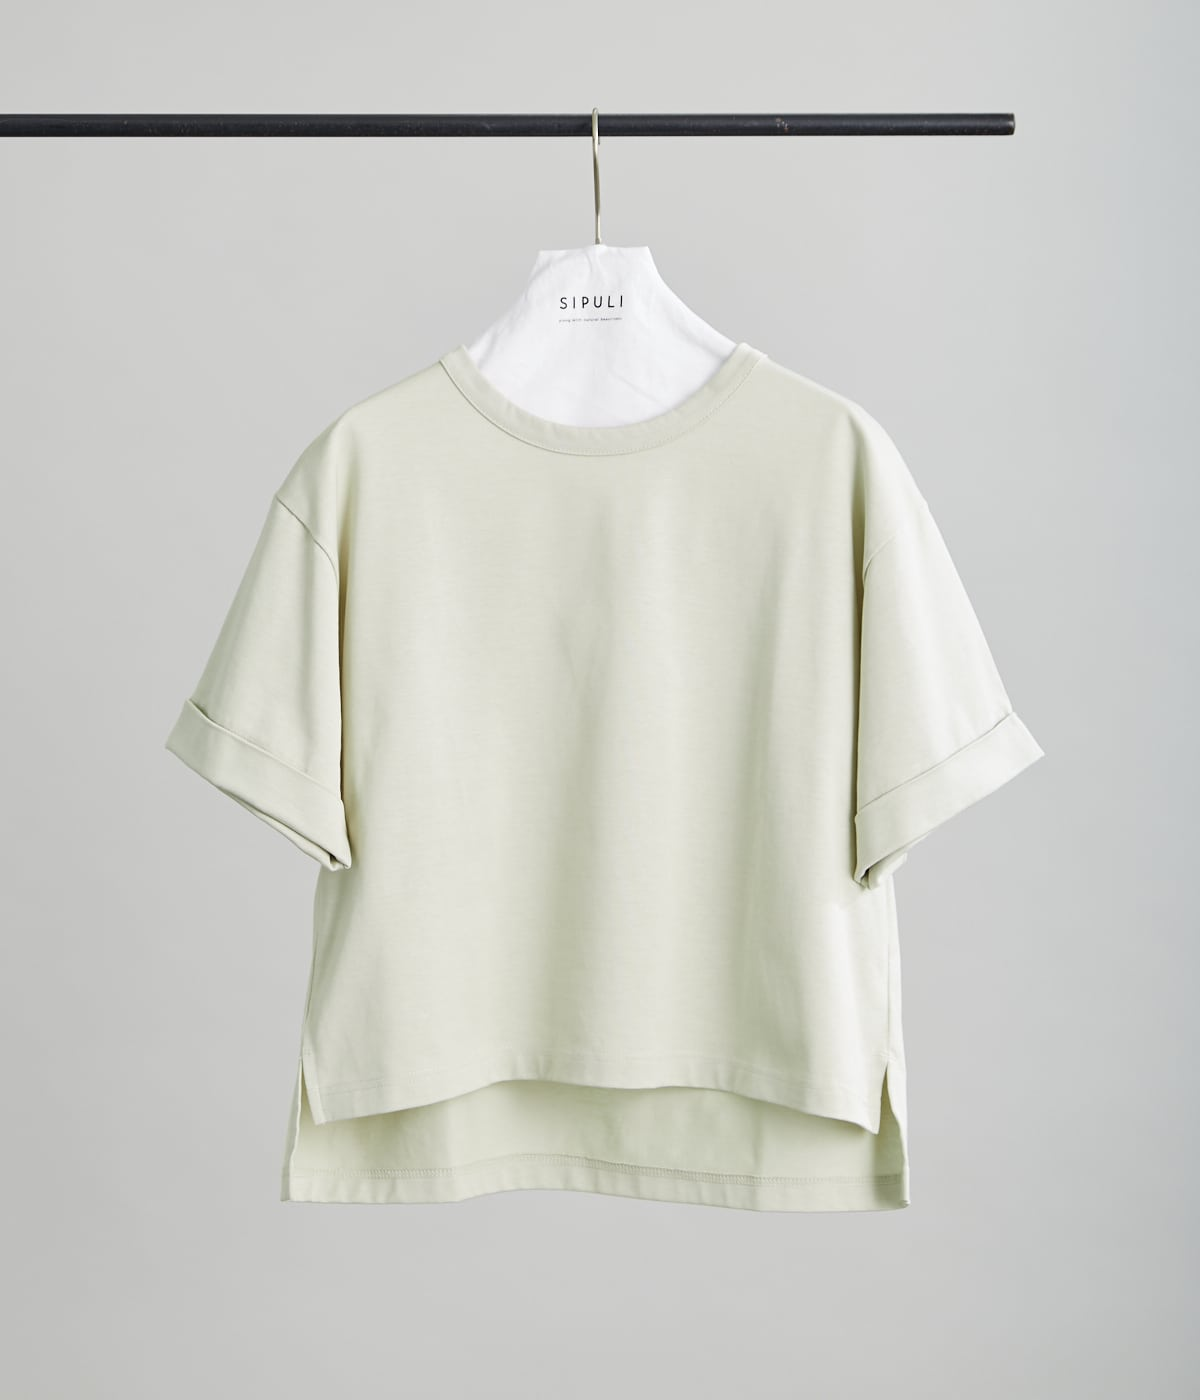 [ULTIMA] Heavy Cotton Jersey ロールアップTシャツ